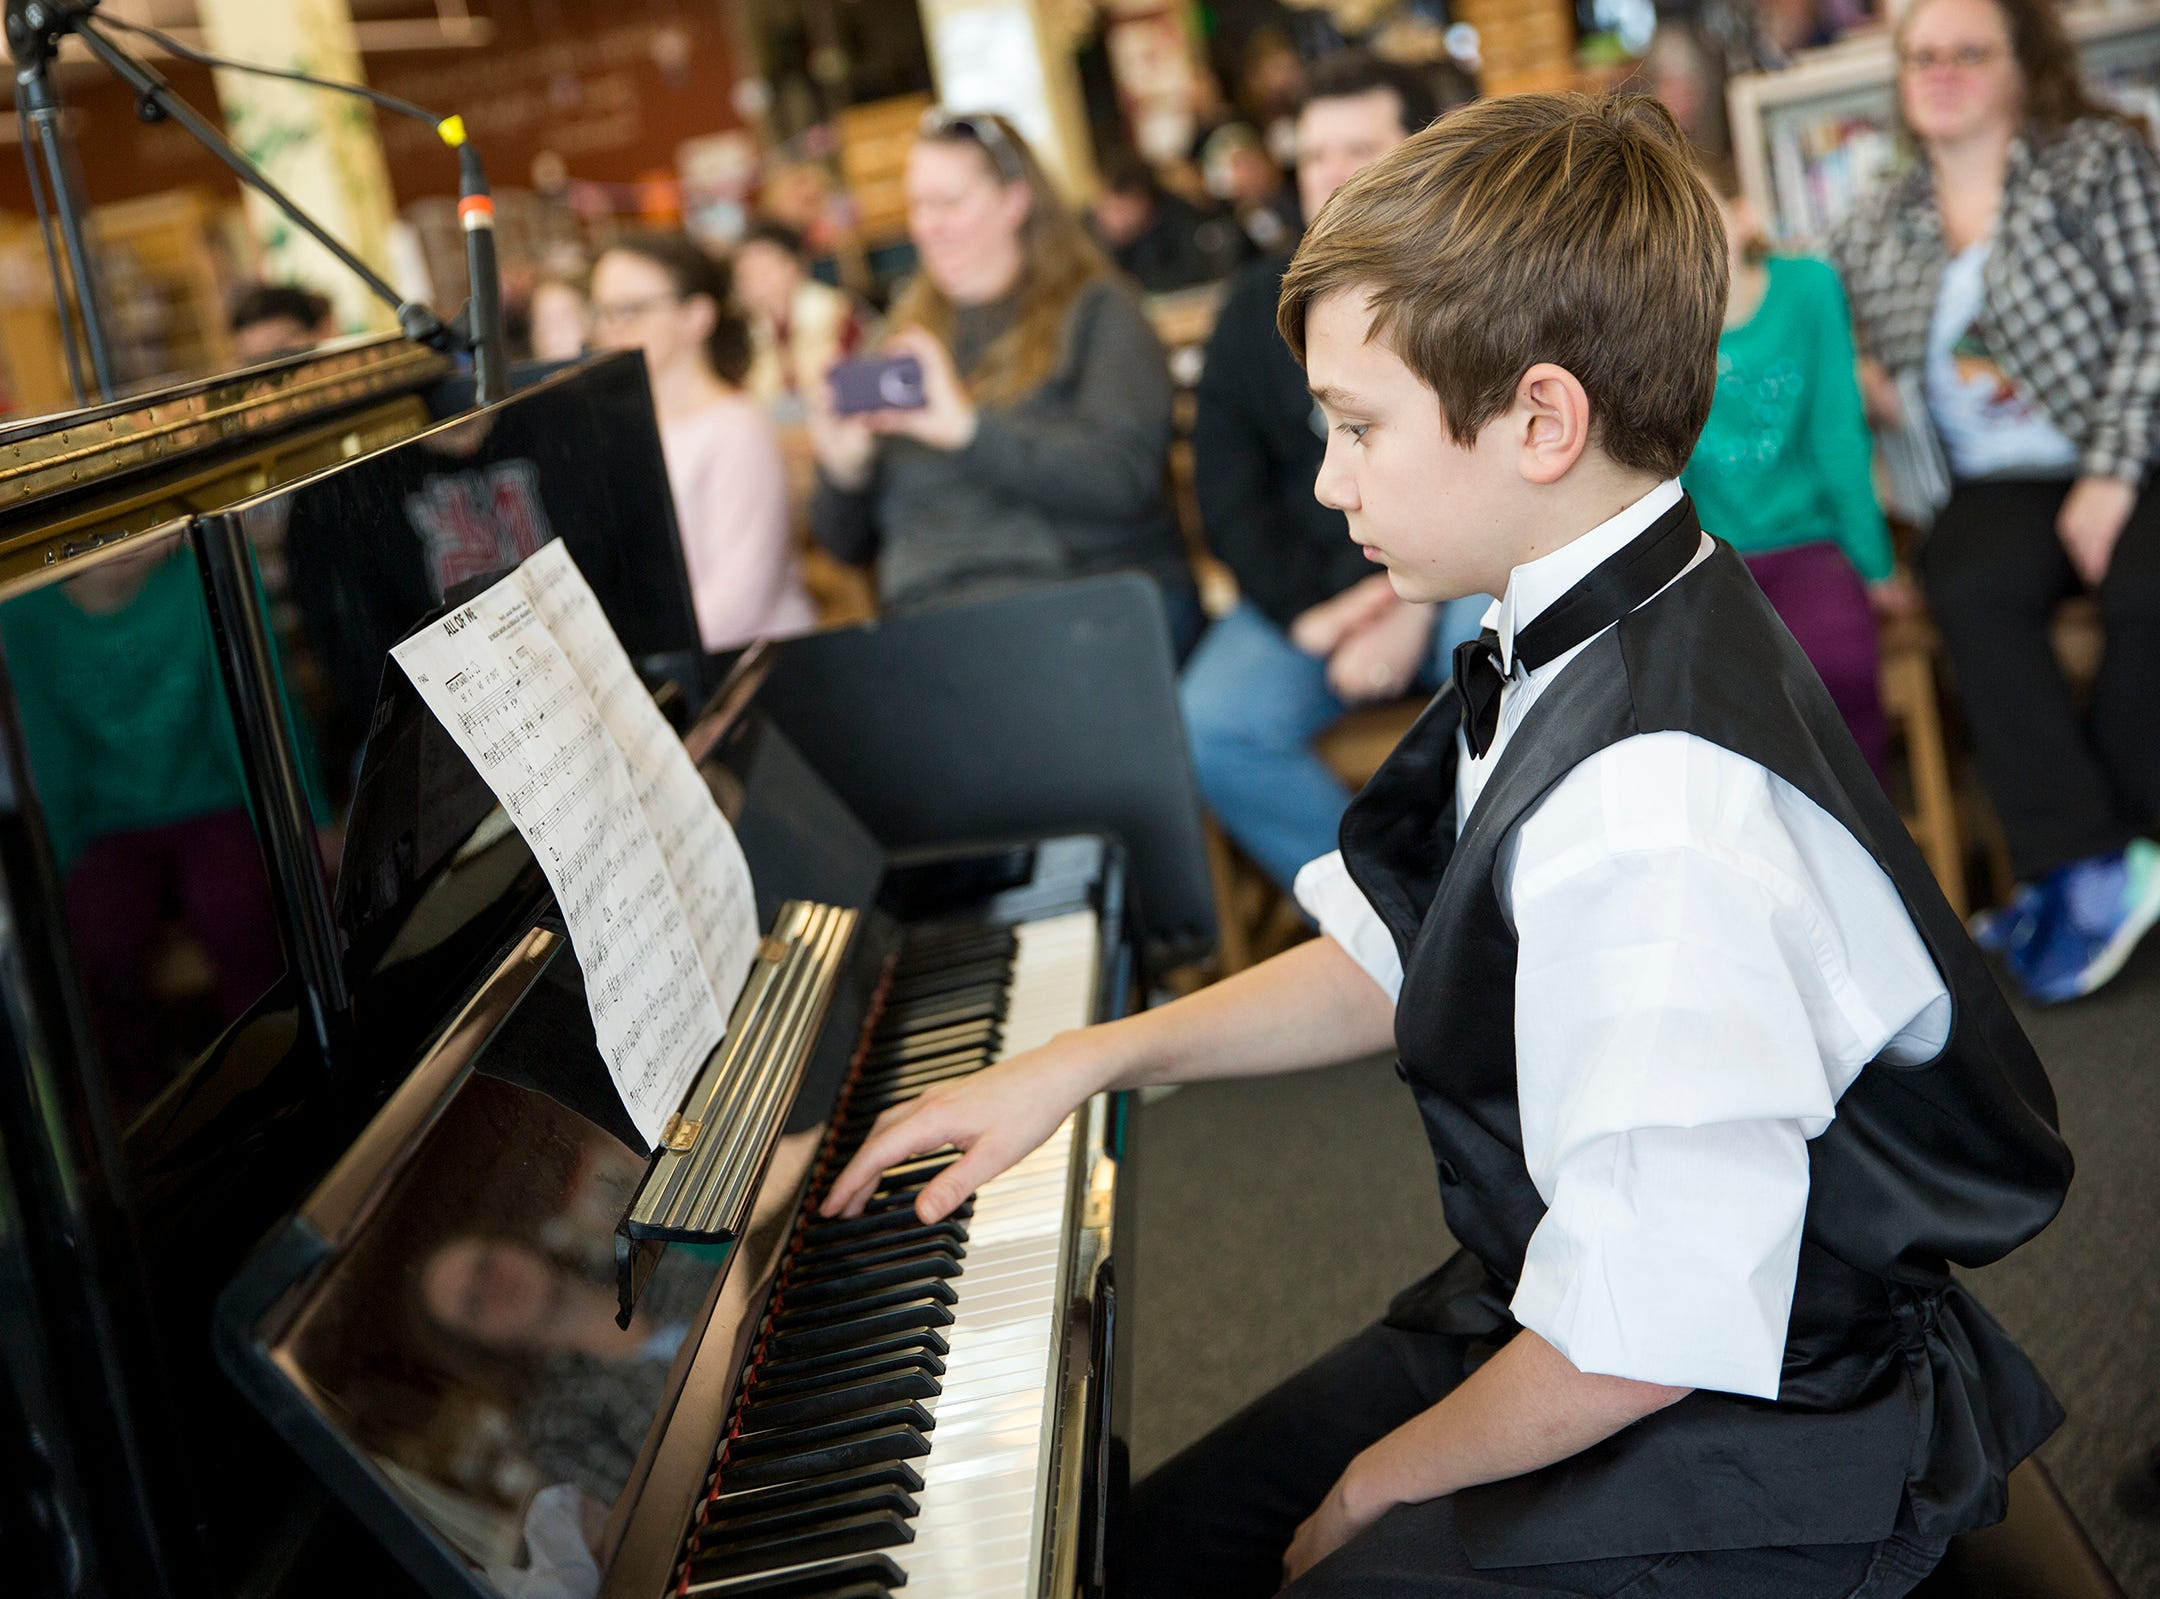 Parish Middle School student Justin Meyer performs at the annual West Salem Jazz Festival at West Salem High School on Saturday, Feb. 9, 2019.